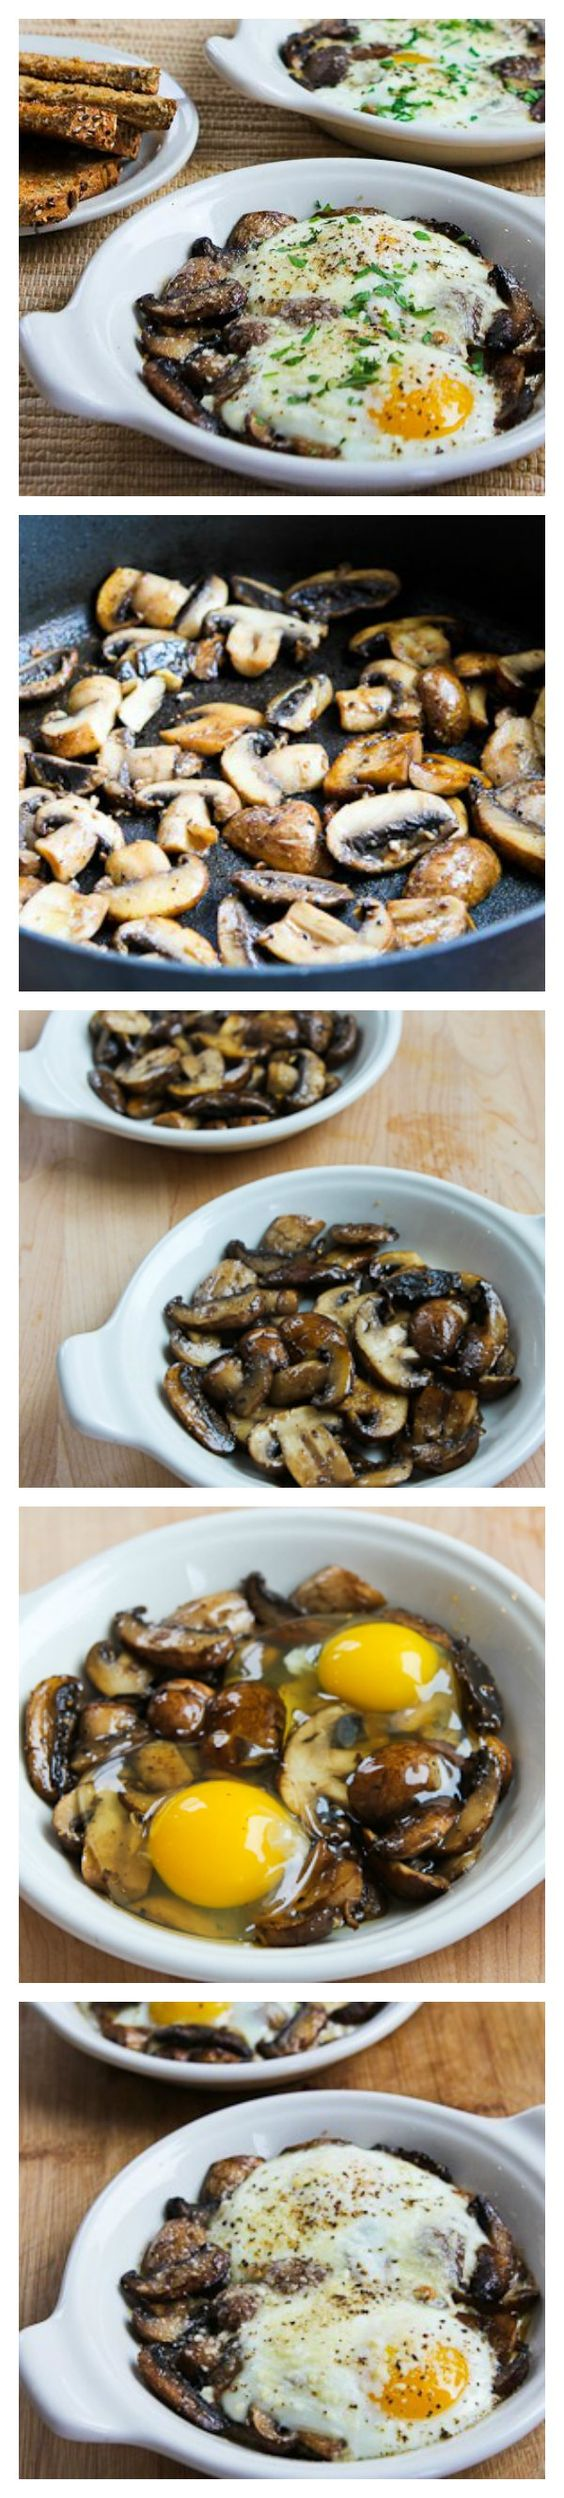 Baked Eggs with Mushrooms and Parmesan | Gluten free, Eggs and The egg